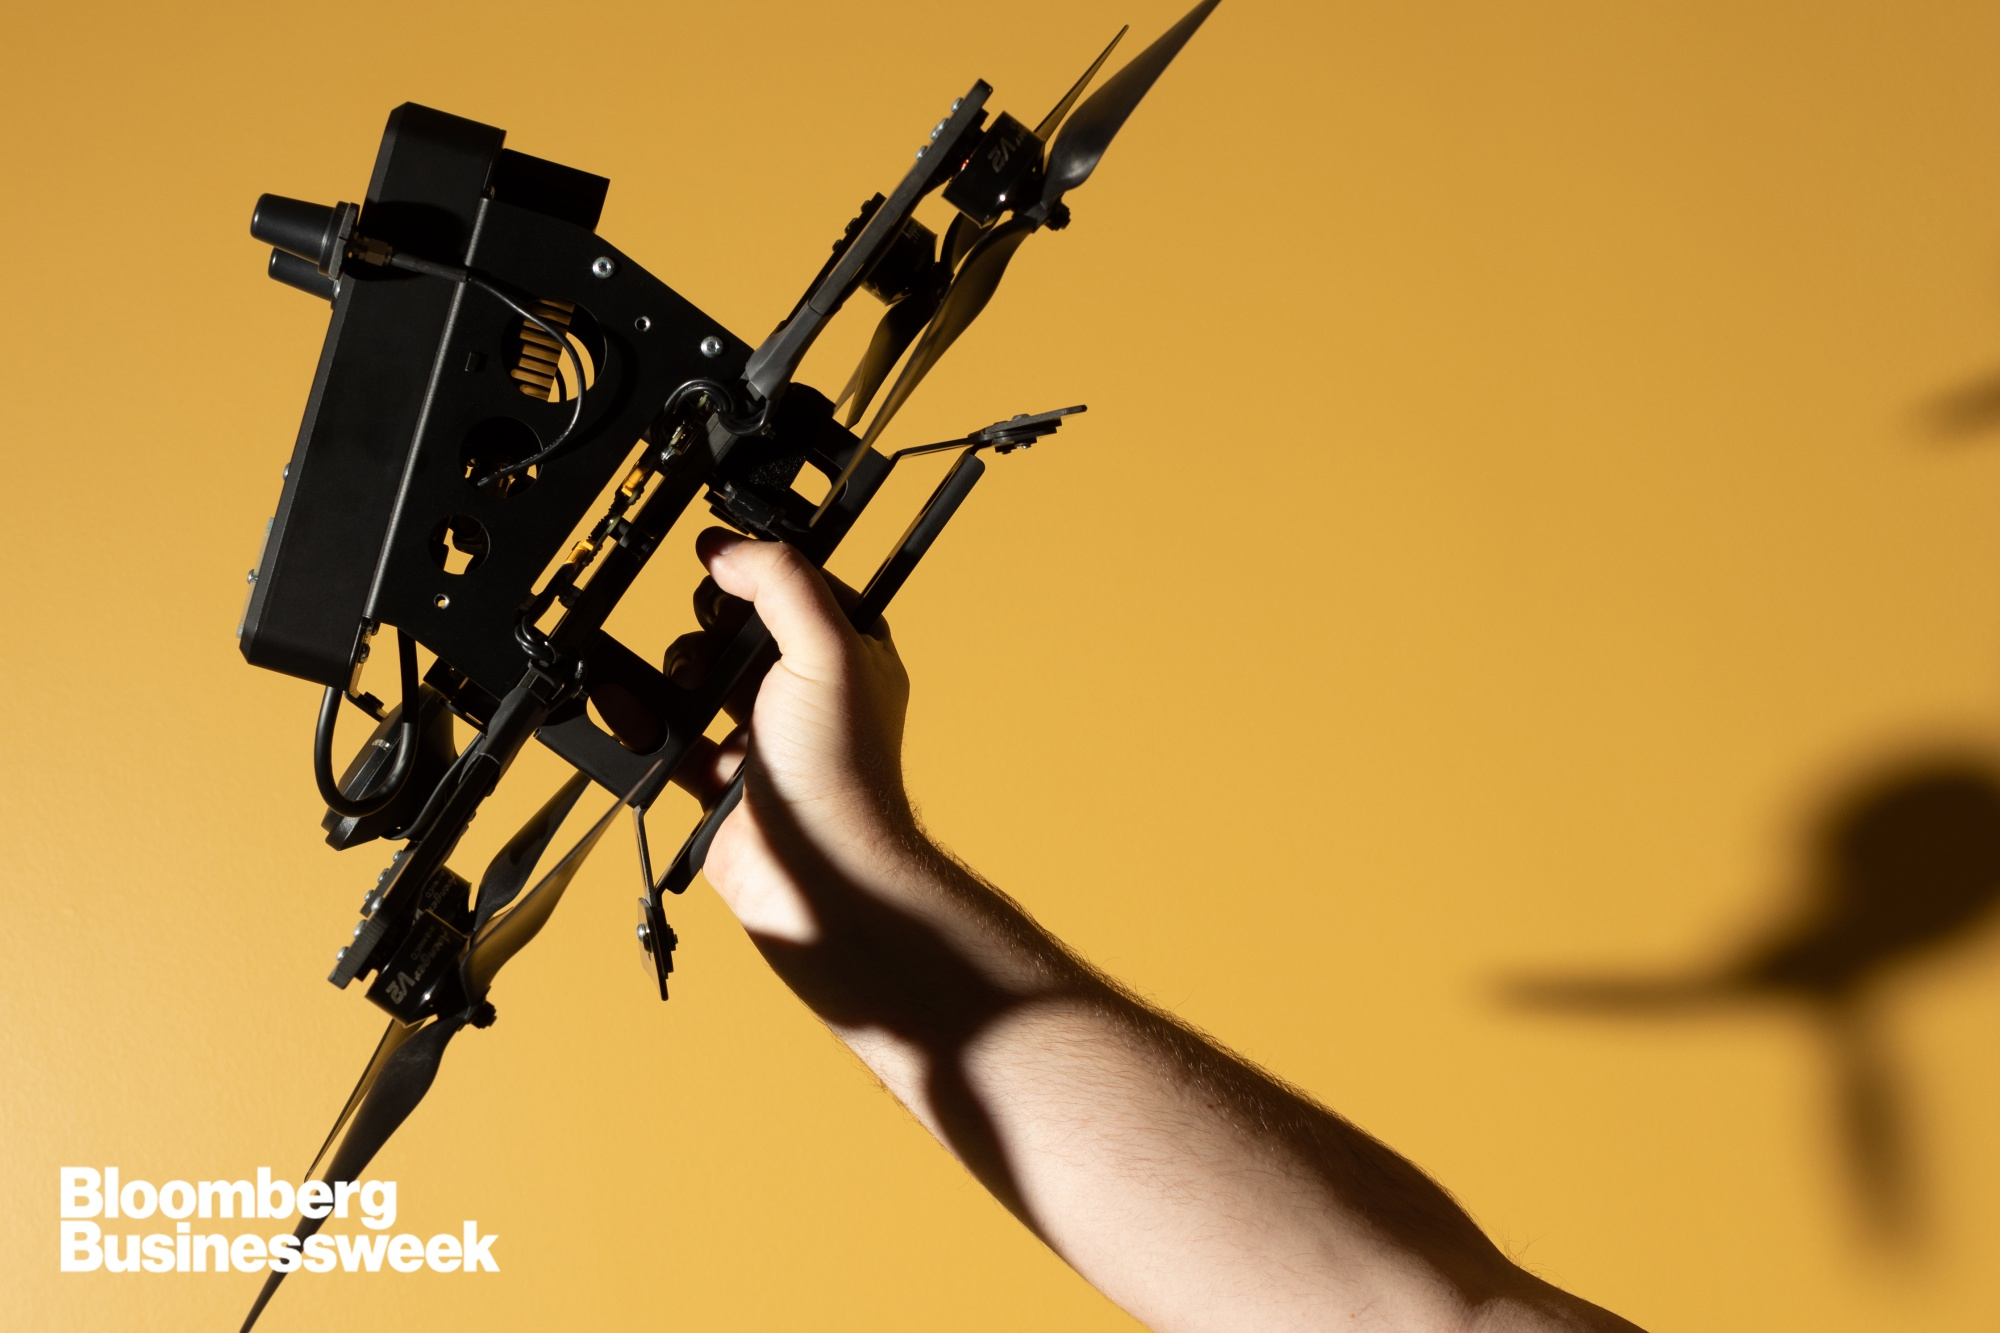 Controversial Tech Startup, Backed by Peter Thiel, Disrupts Business of War With Attack Drones